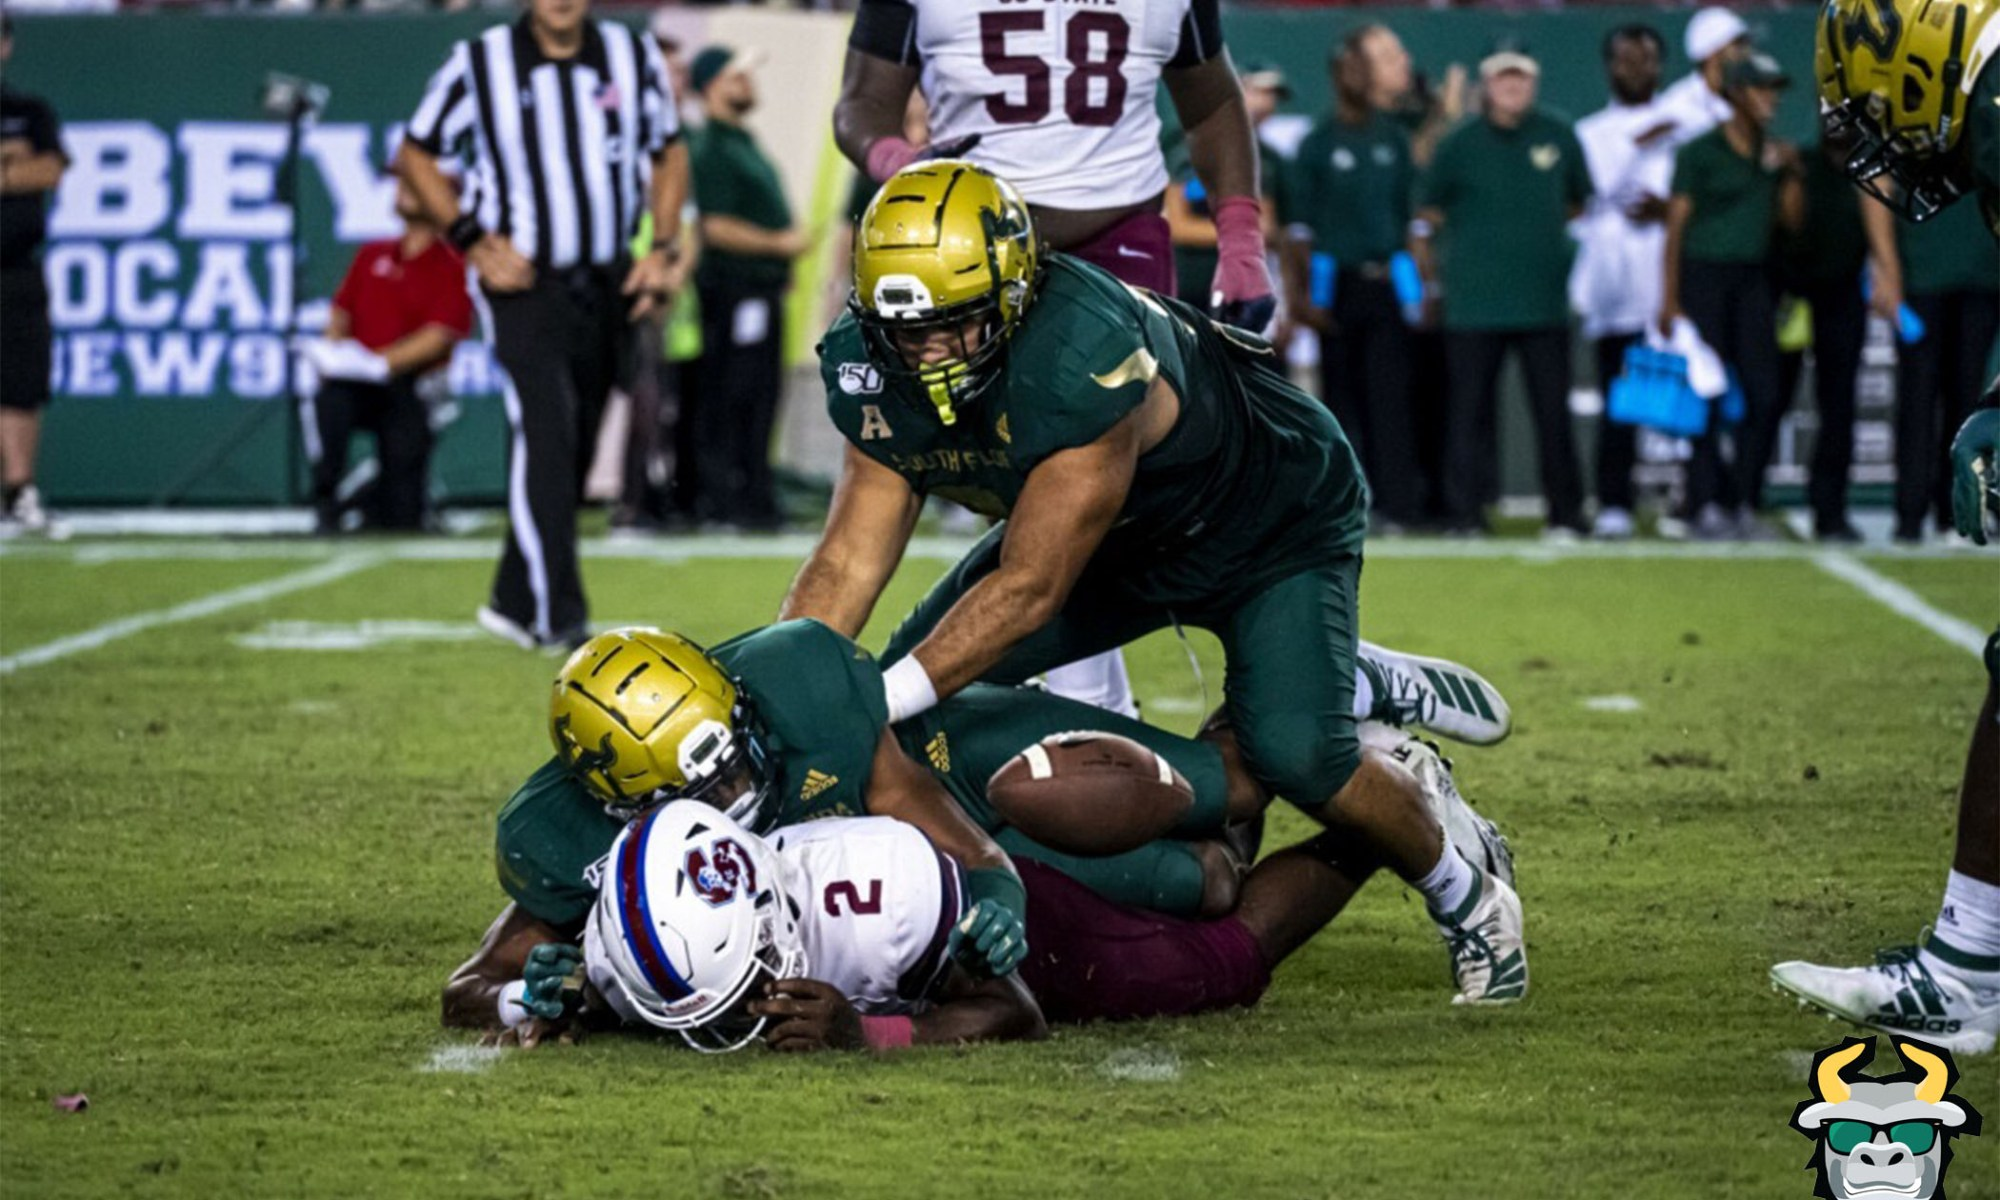 USF Defense Forced Fumble